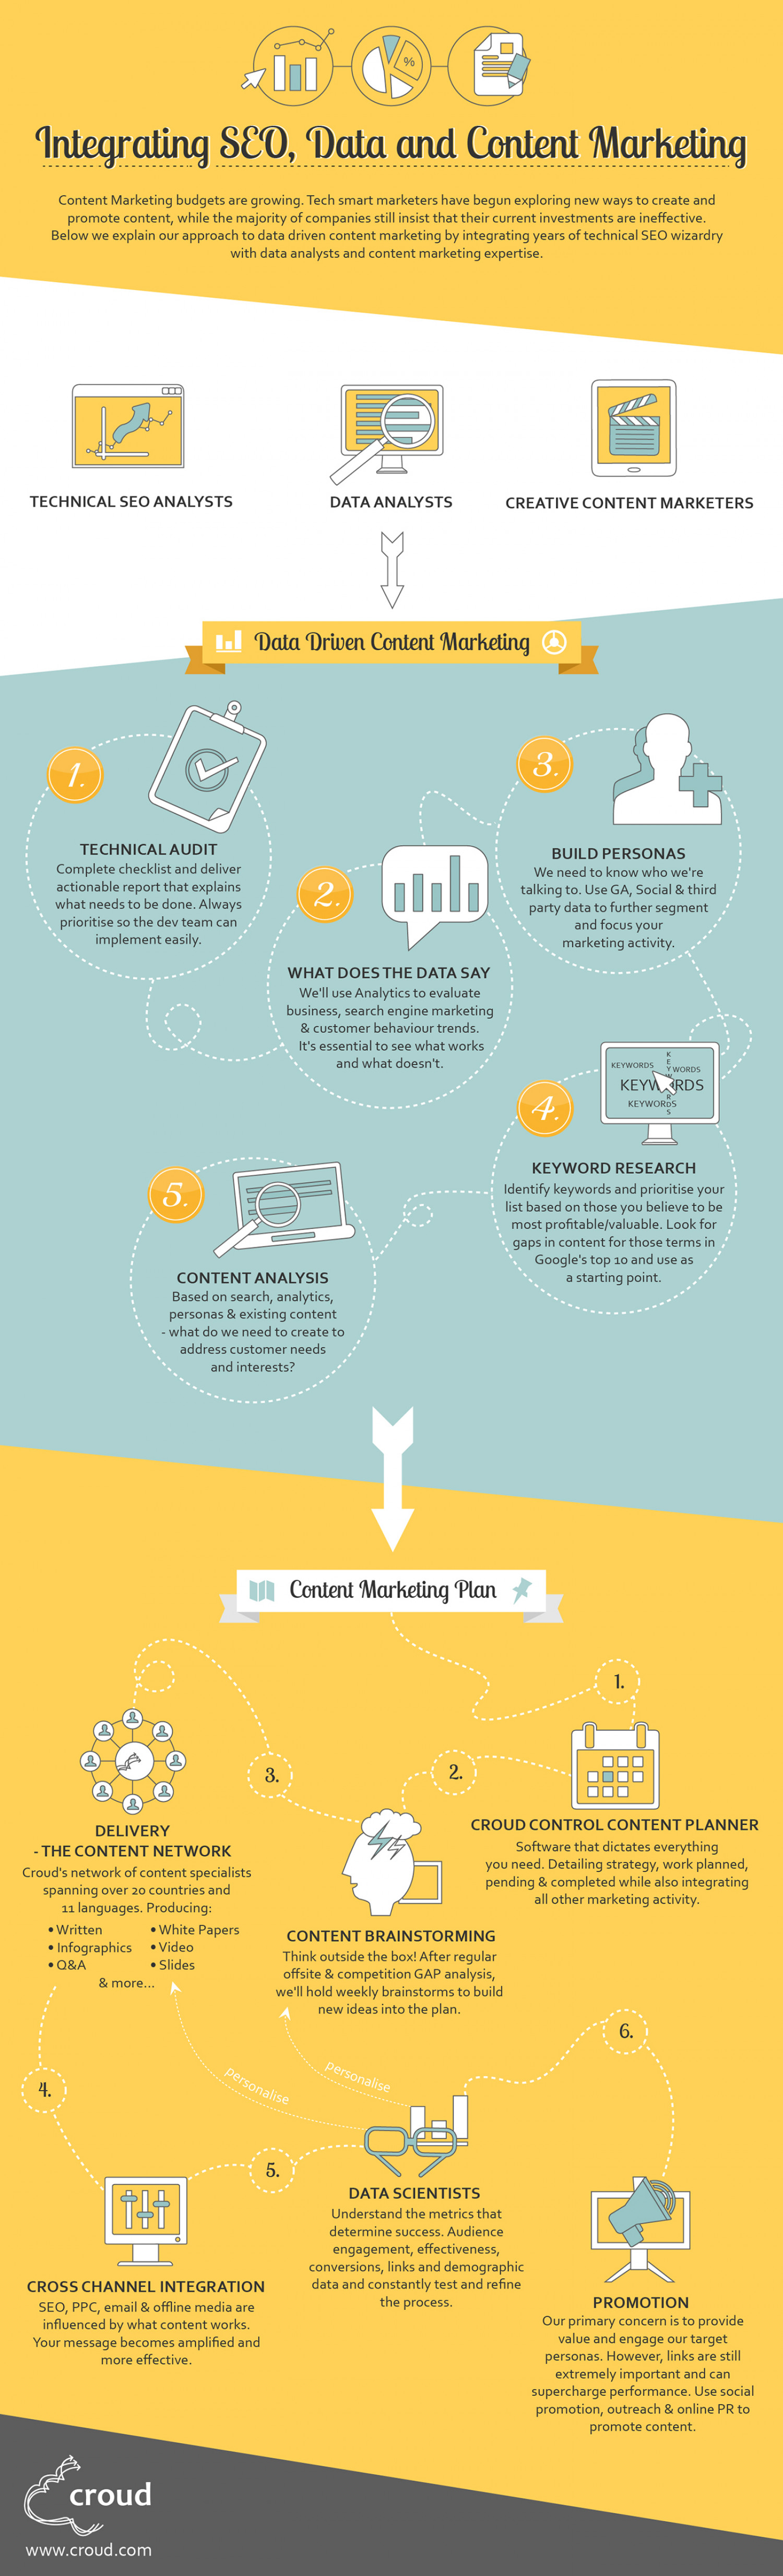 Integrating SEO, Data & Content Marketing Infographic